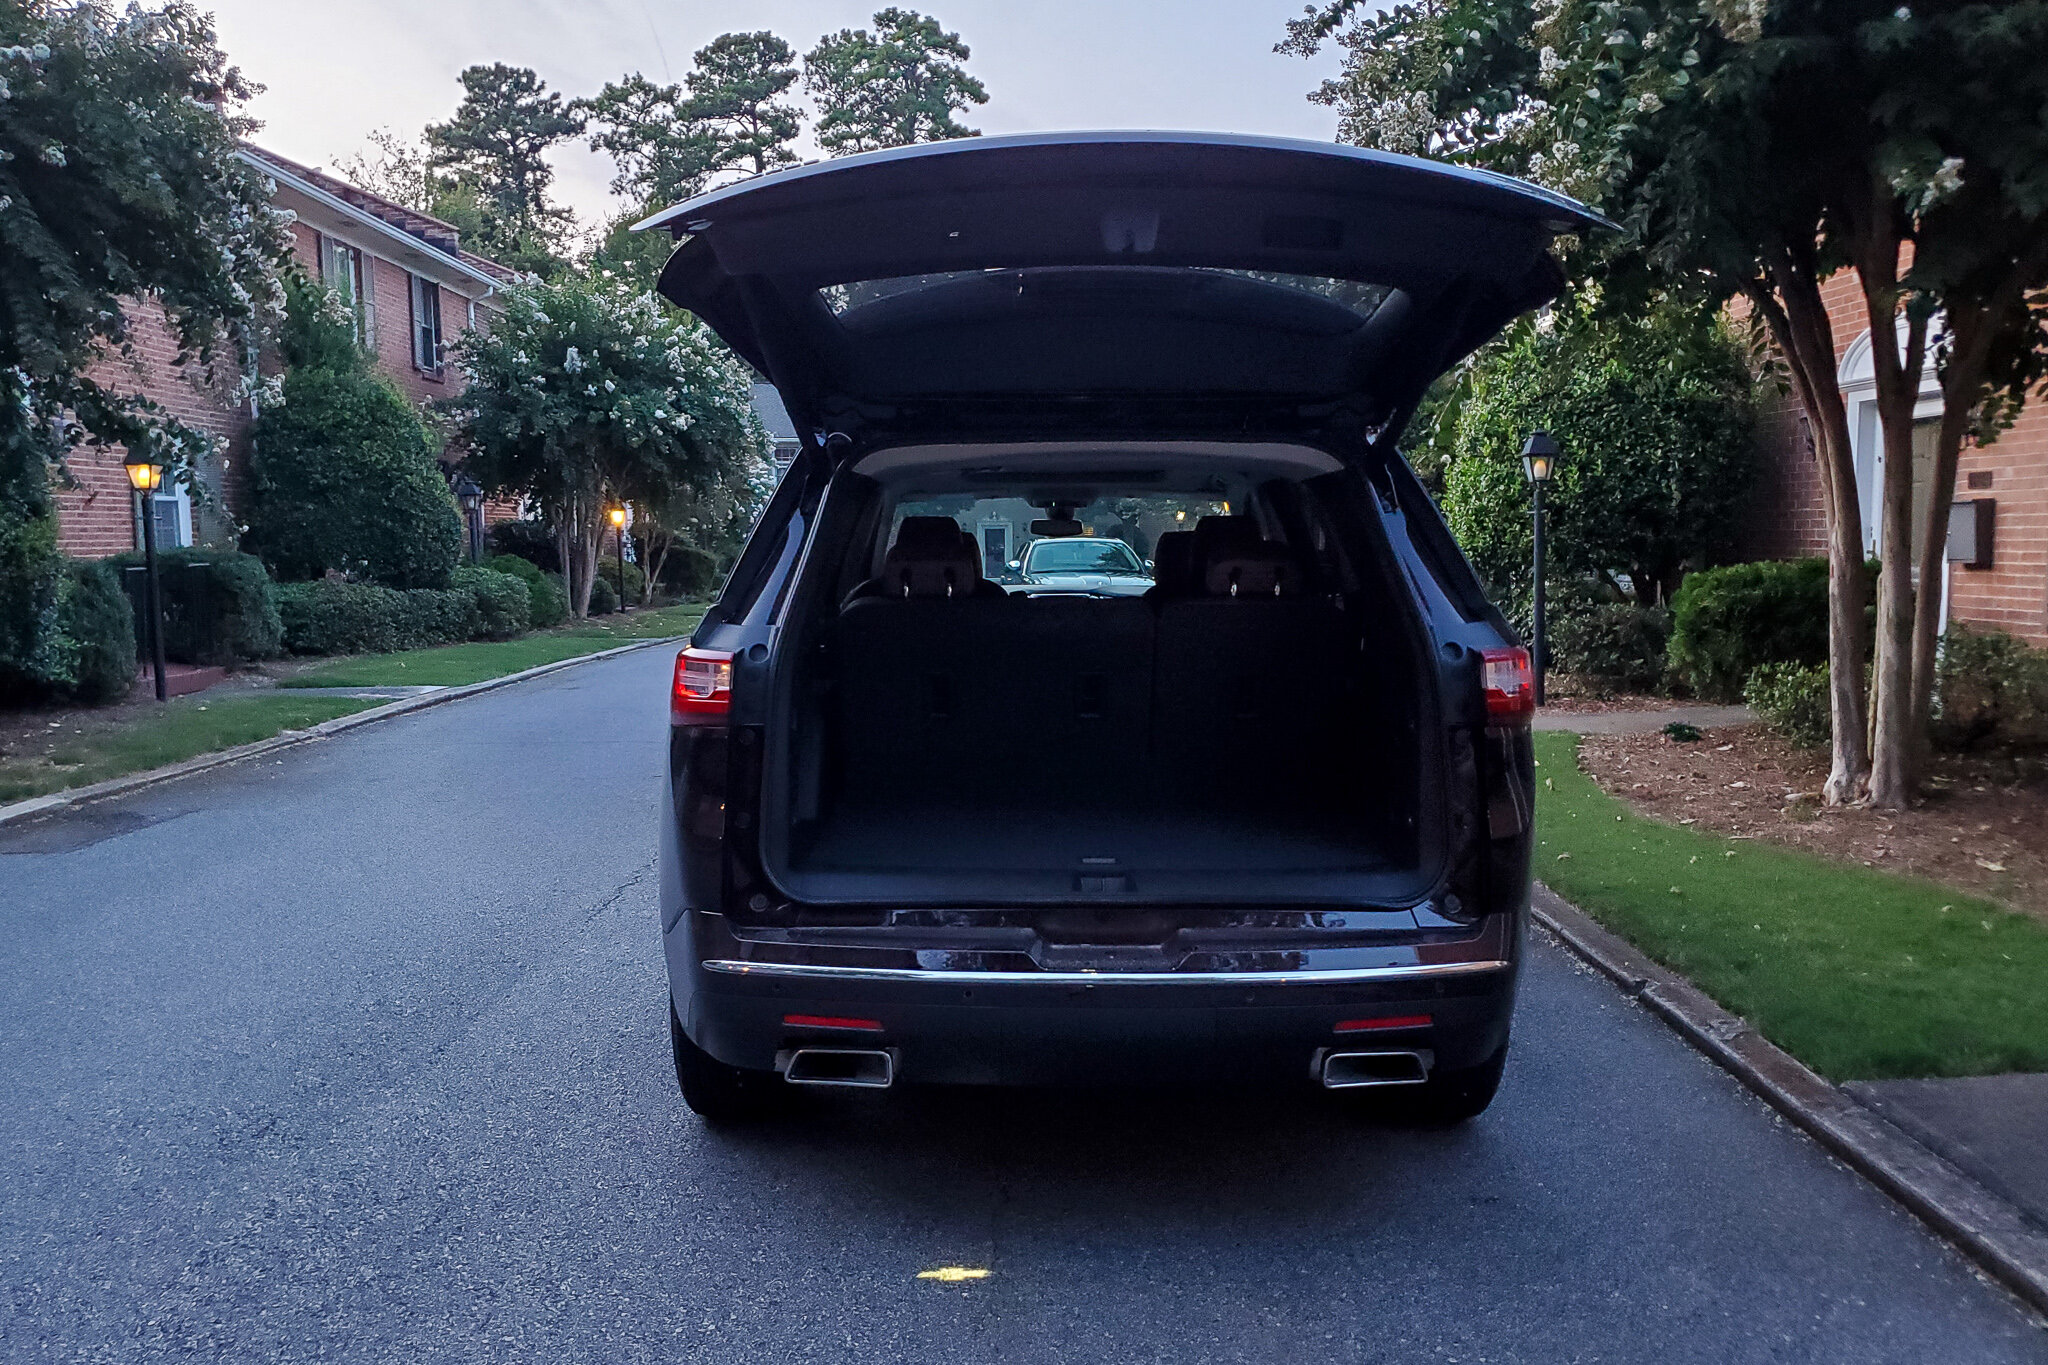 Plenty of trunk space for all your road trip luggage inside the 2019 Chevy Traverse (c) Anna Lanfreschi